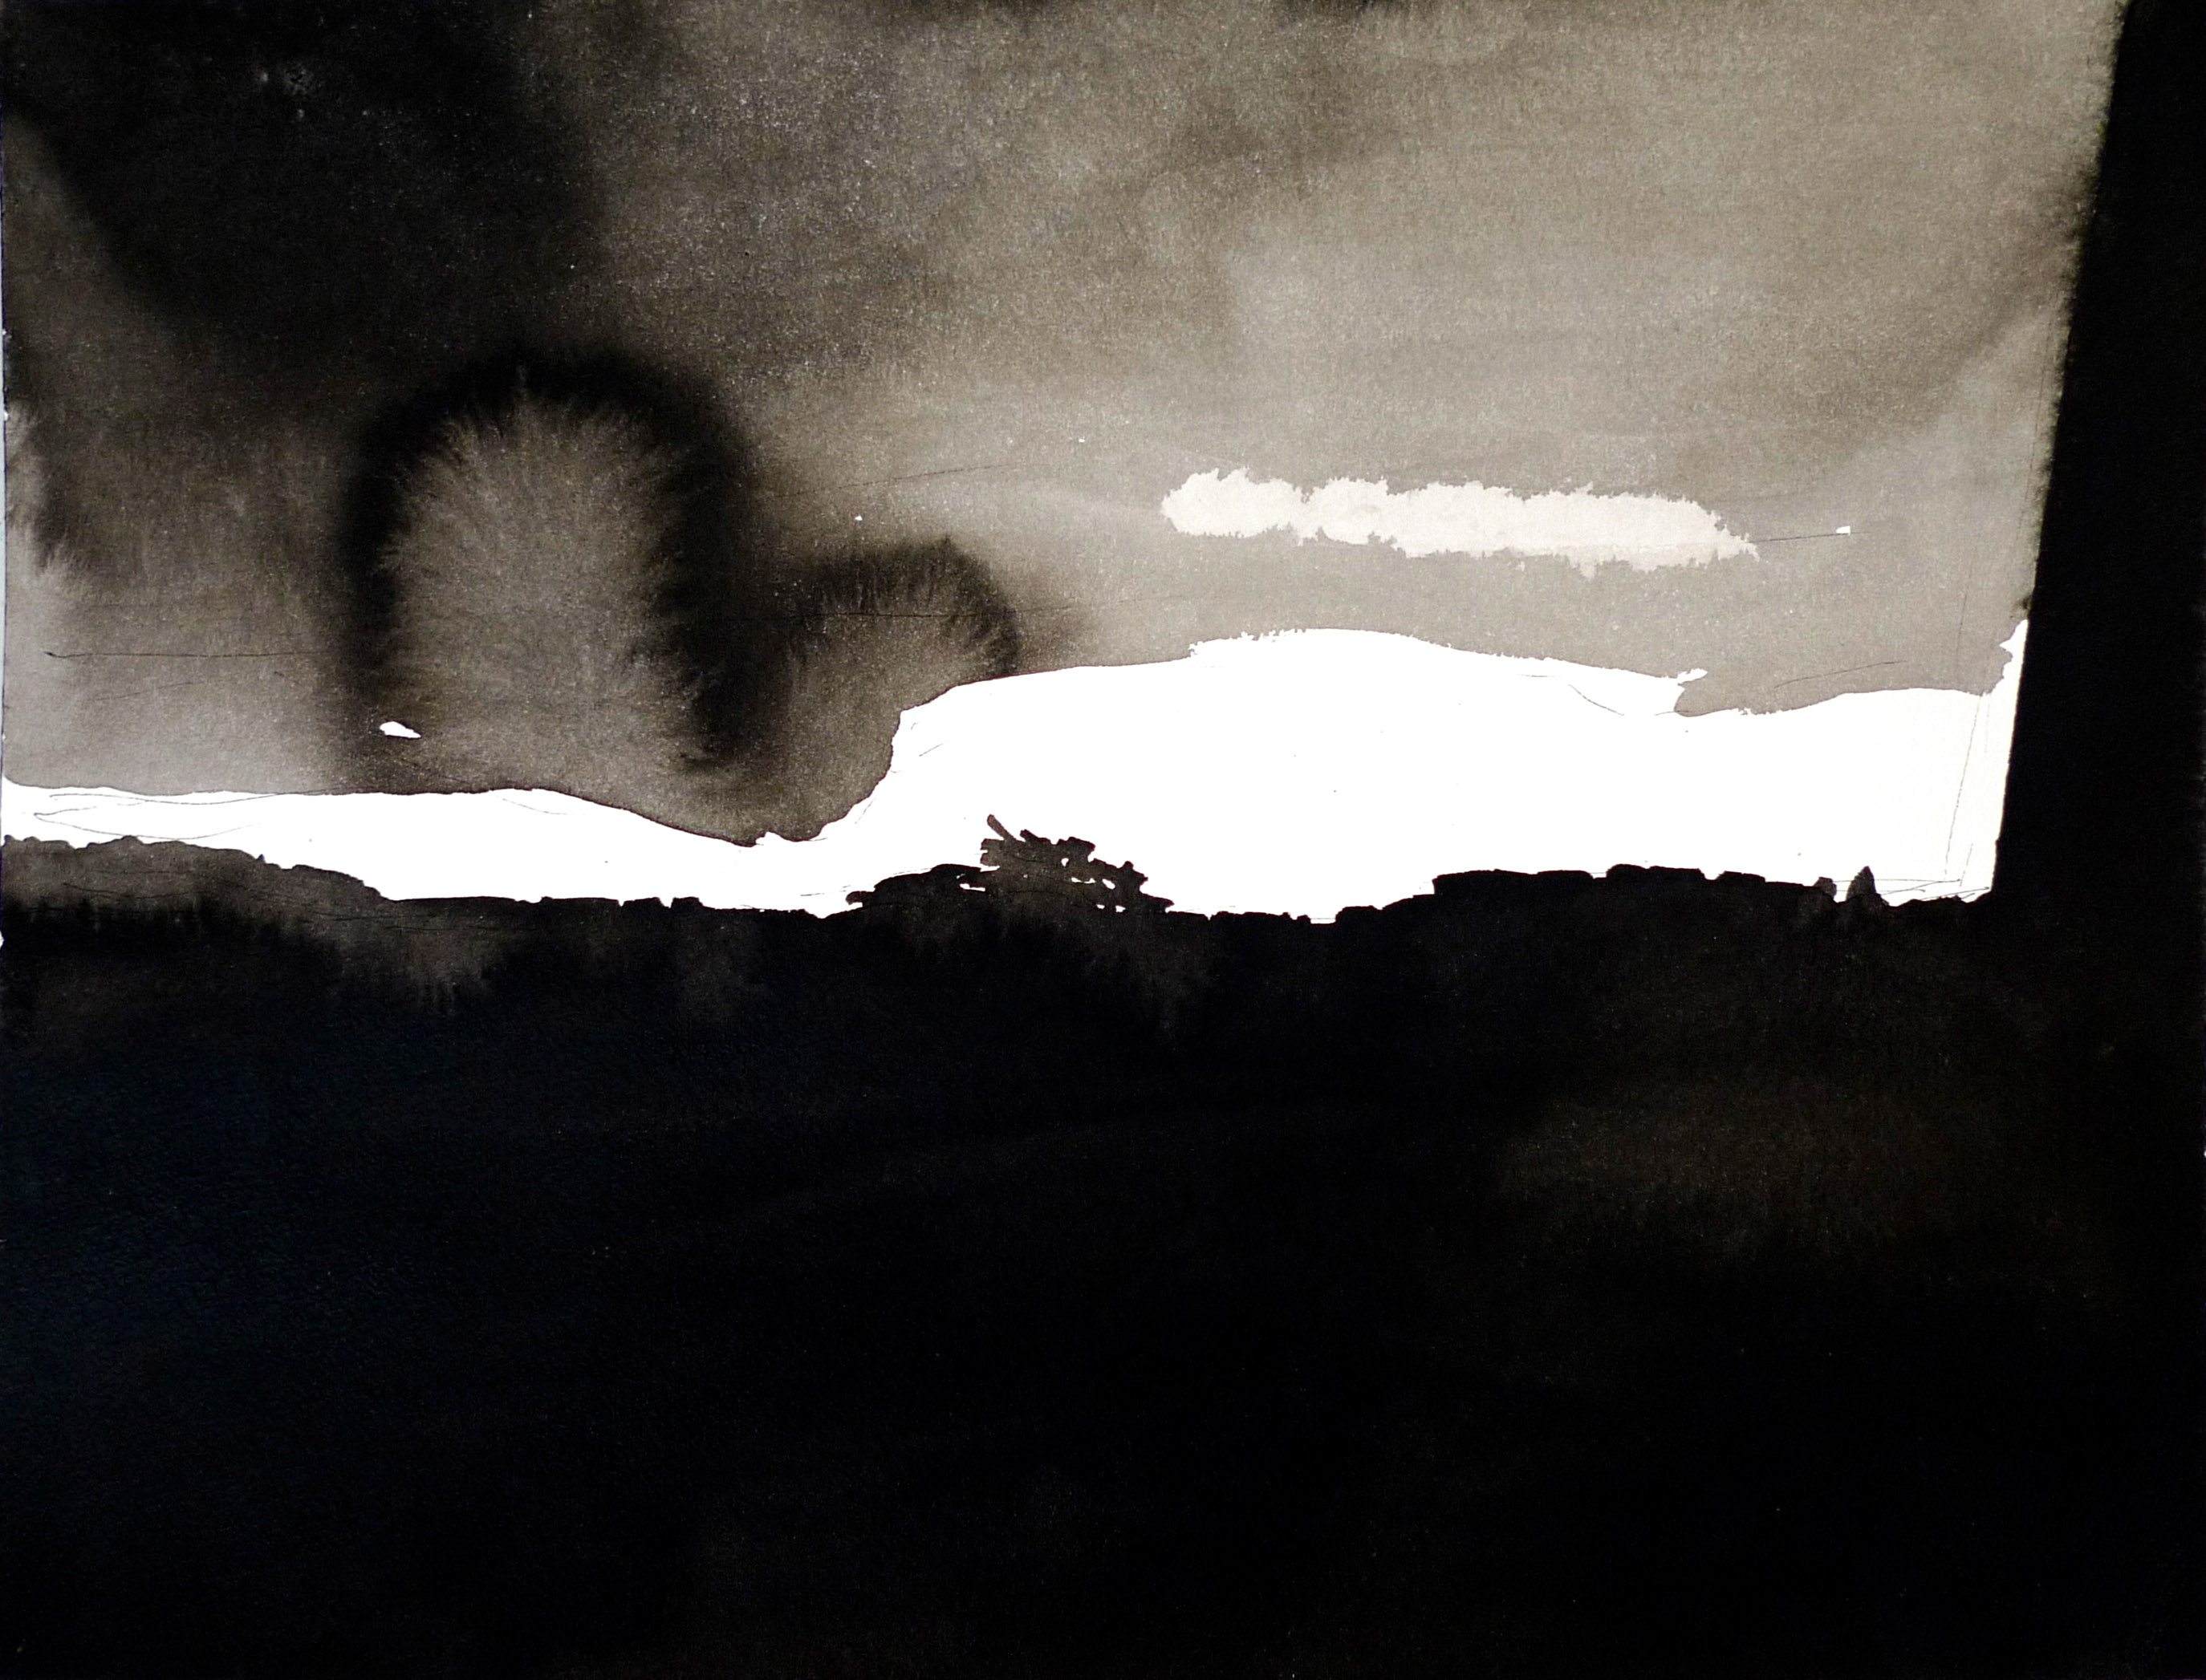 View 1-2. Ink, paper. 31x41cm. 2013